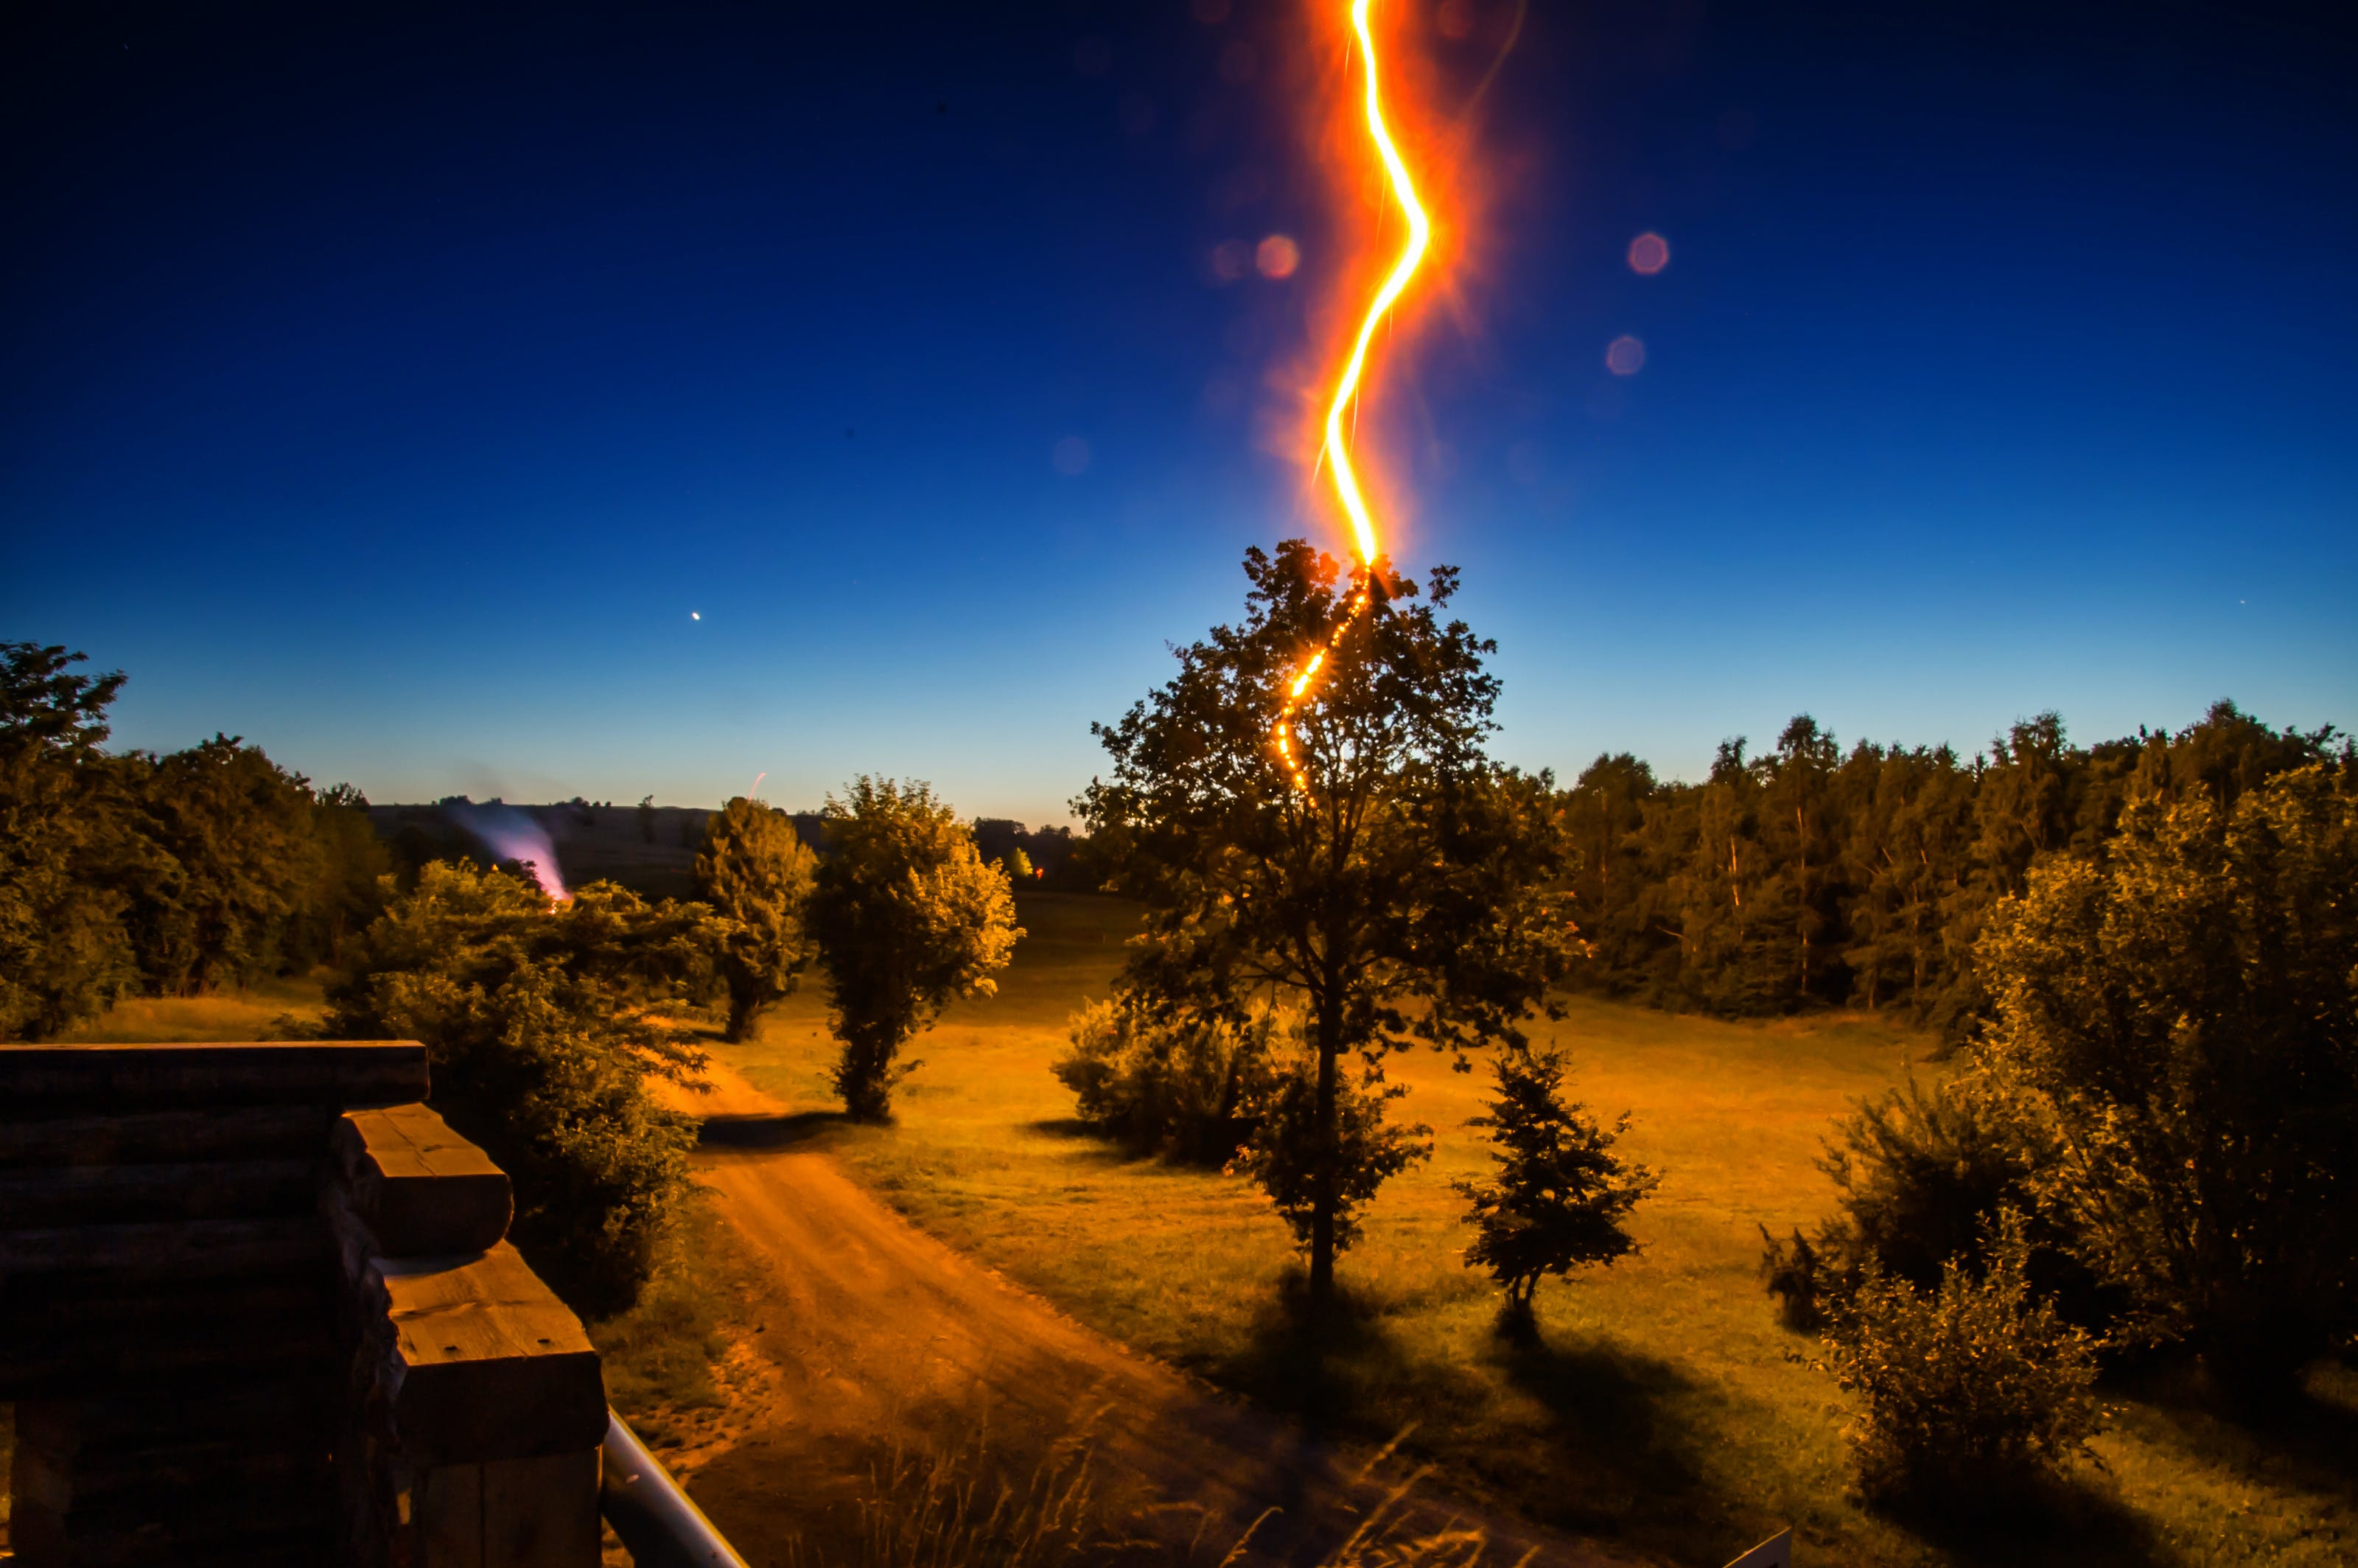 Lightning Strikes Tree in Front of House during Nighttime